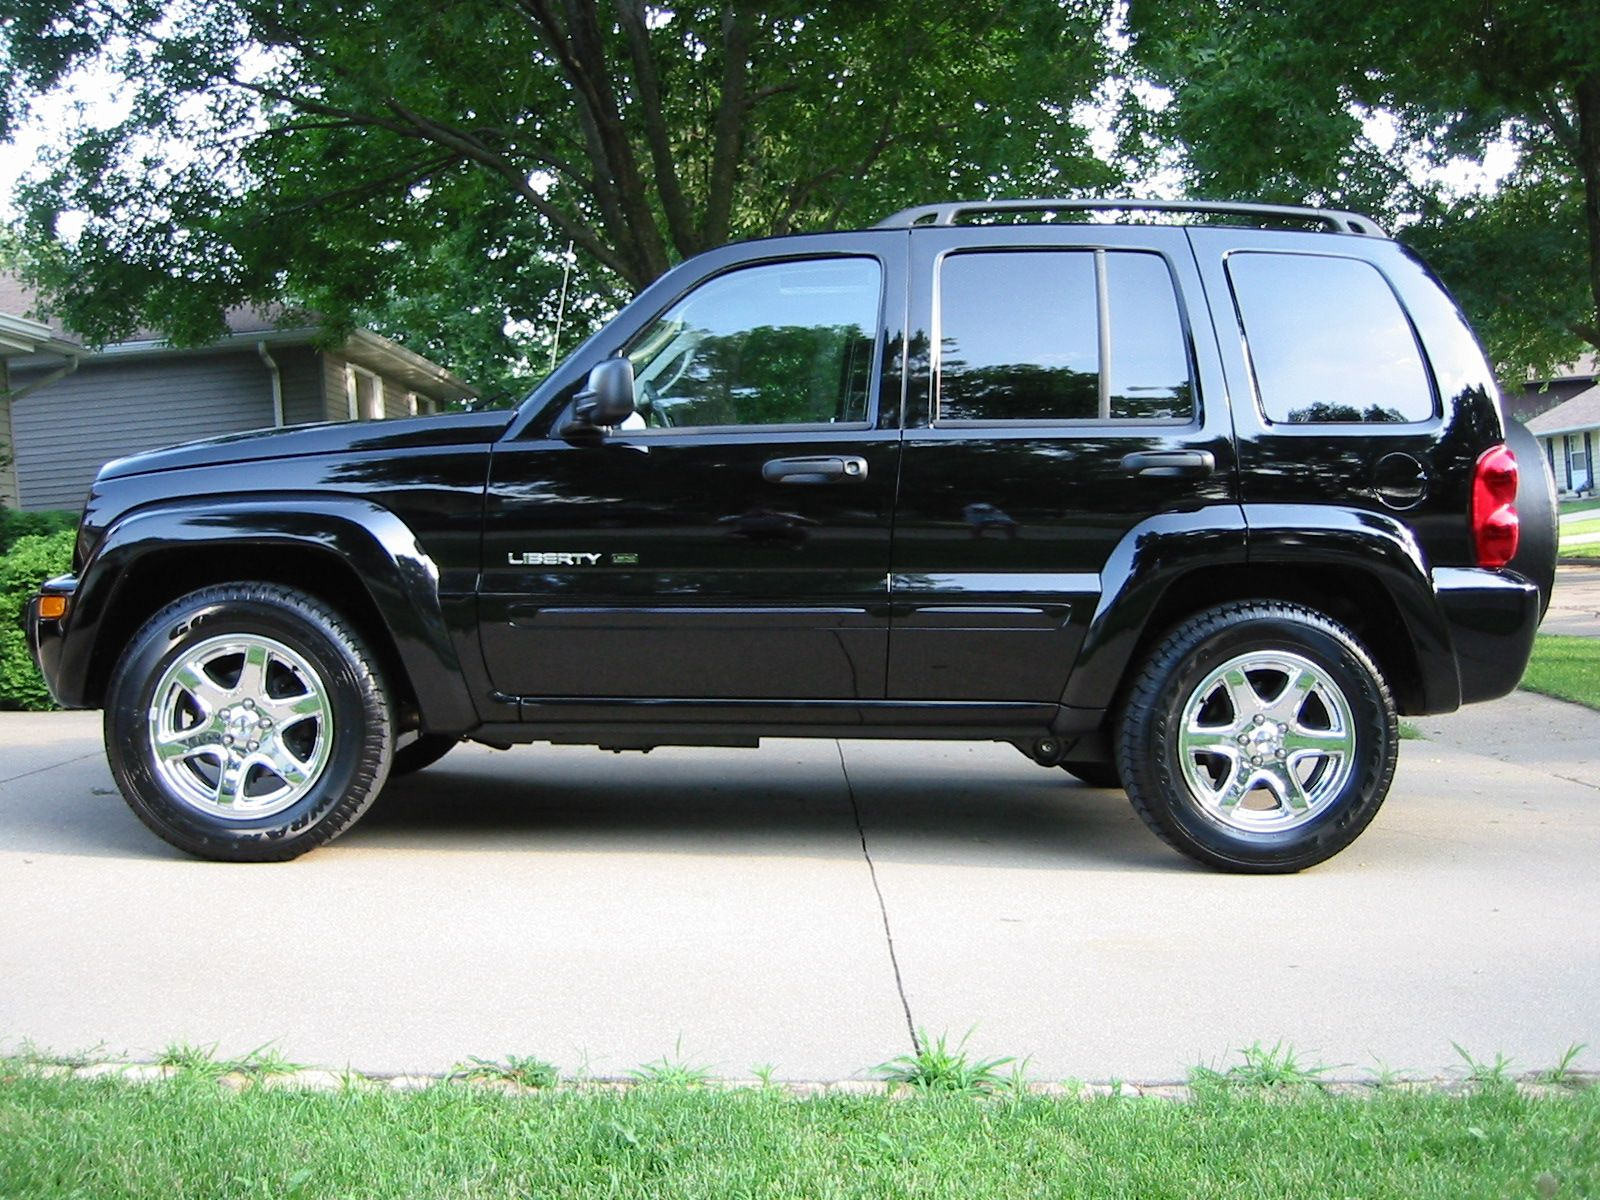 2003 jeep liberty limited the first suv that i owned all on my own